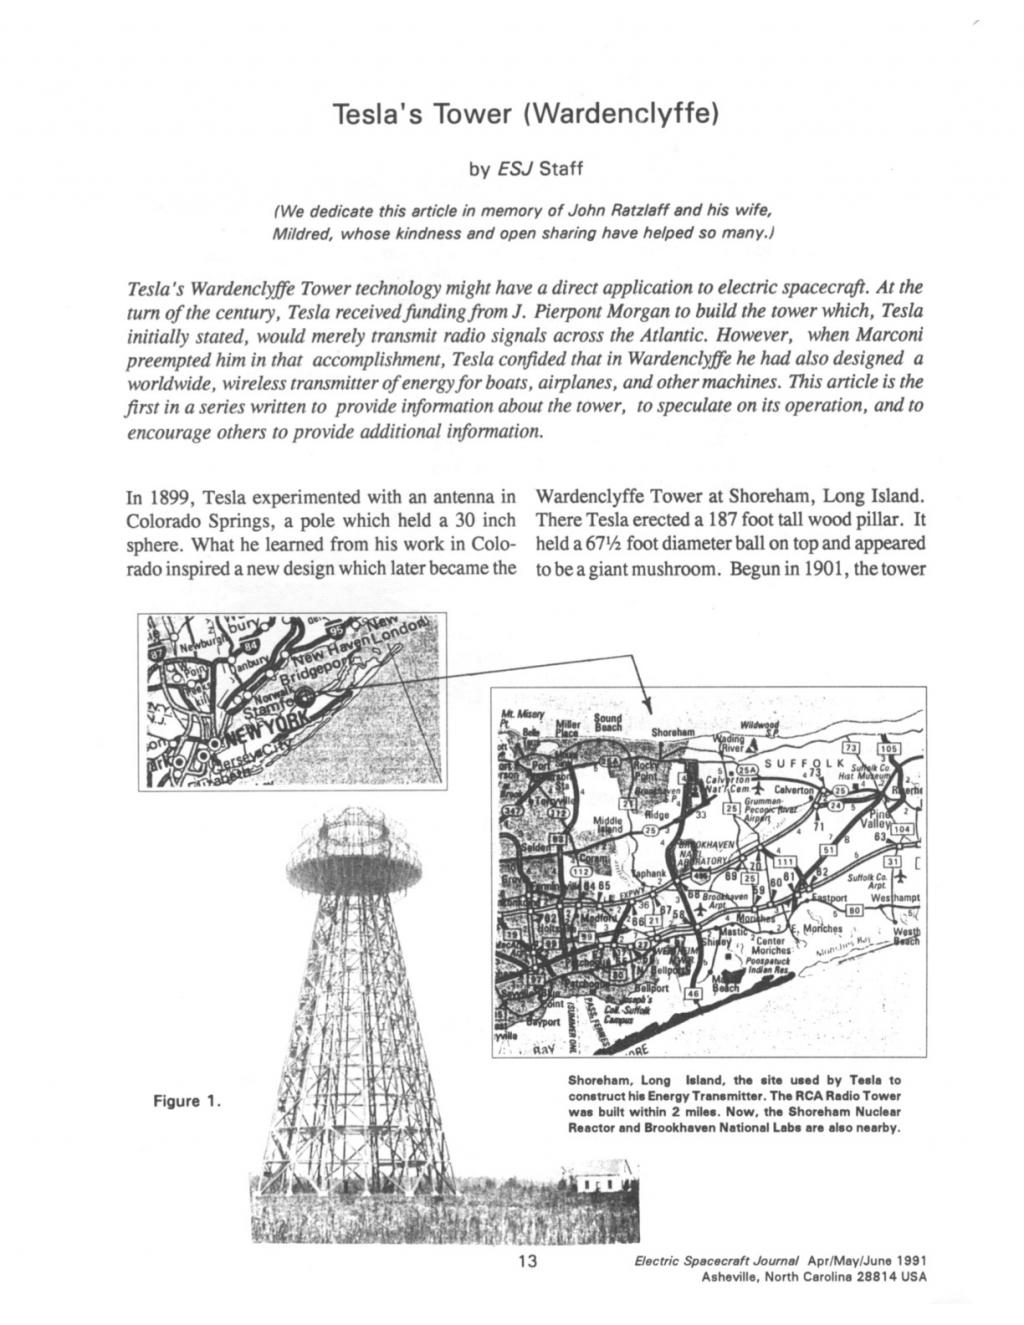 Preview of Tesla's Tower - Wardenclyffe article